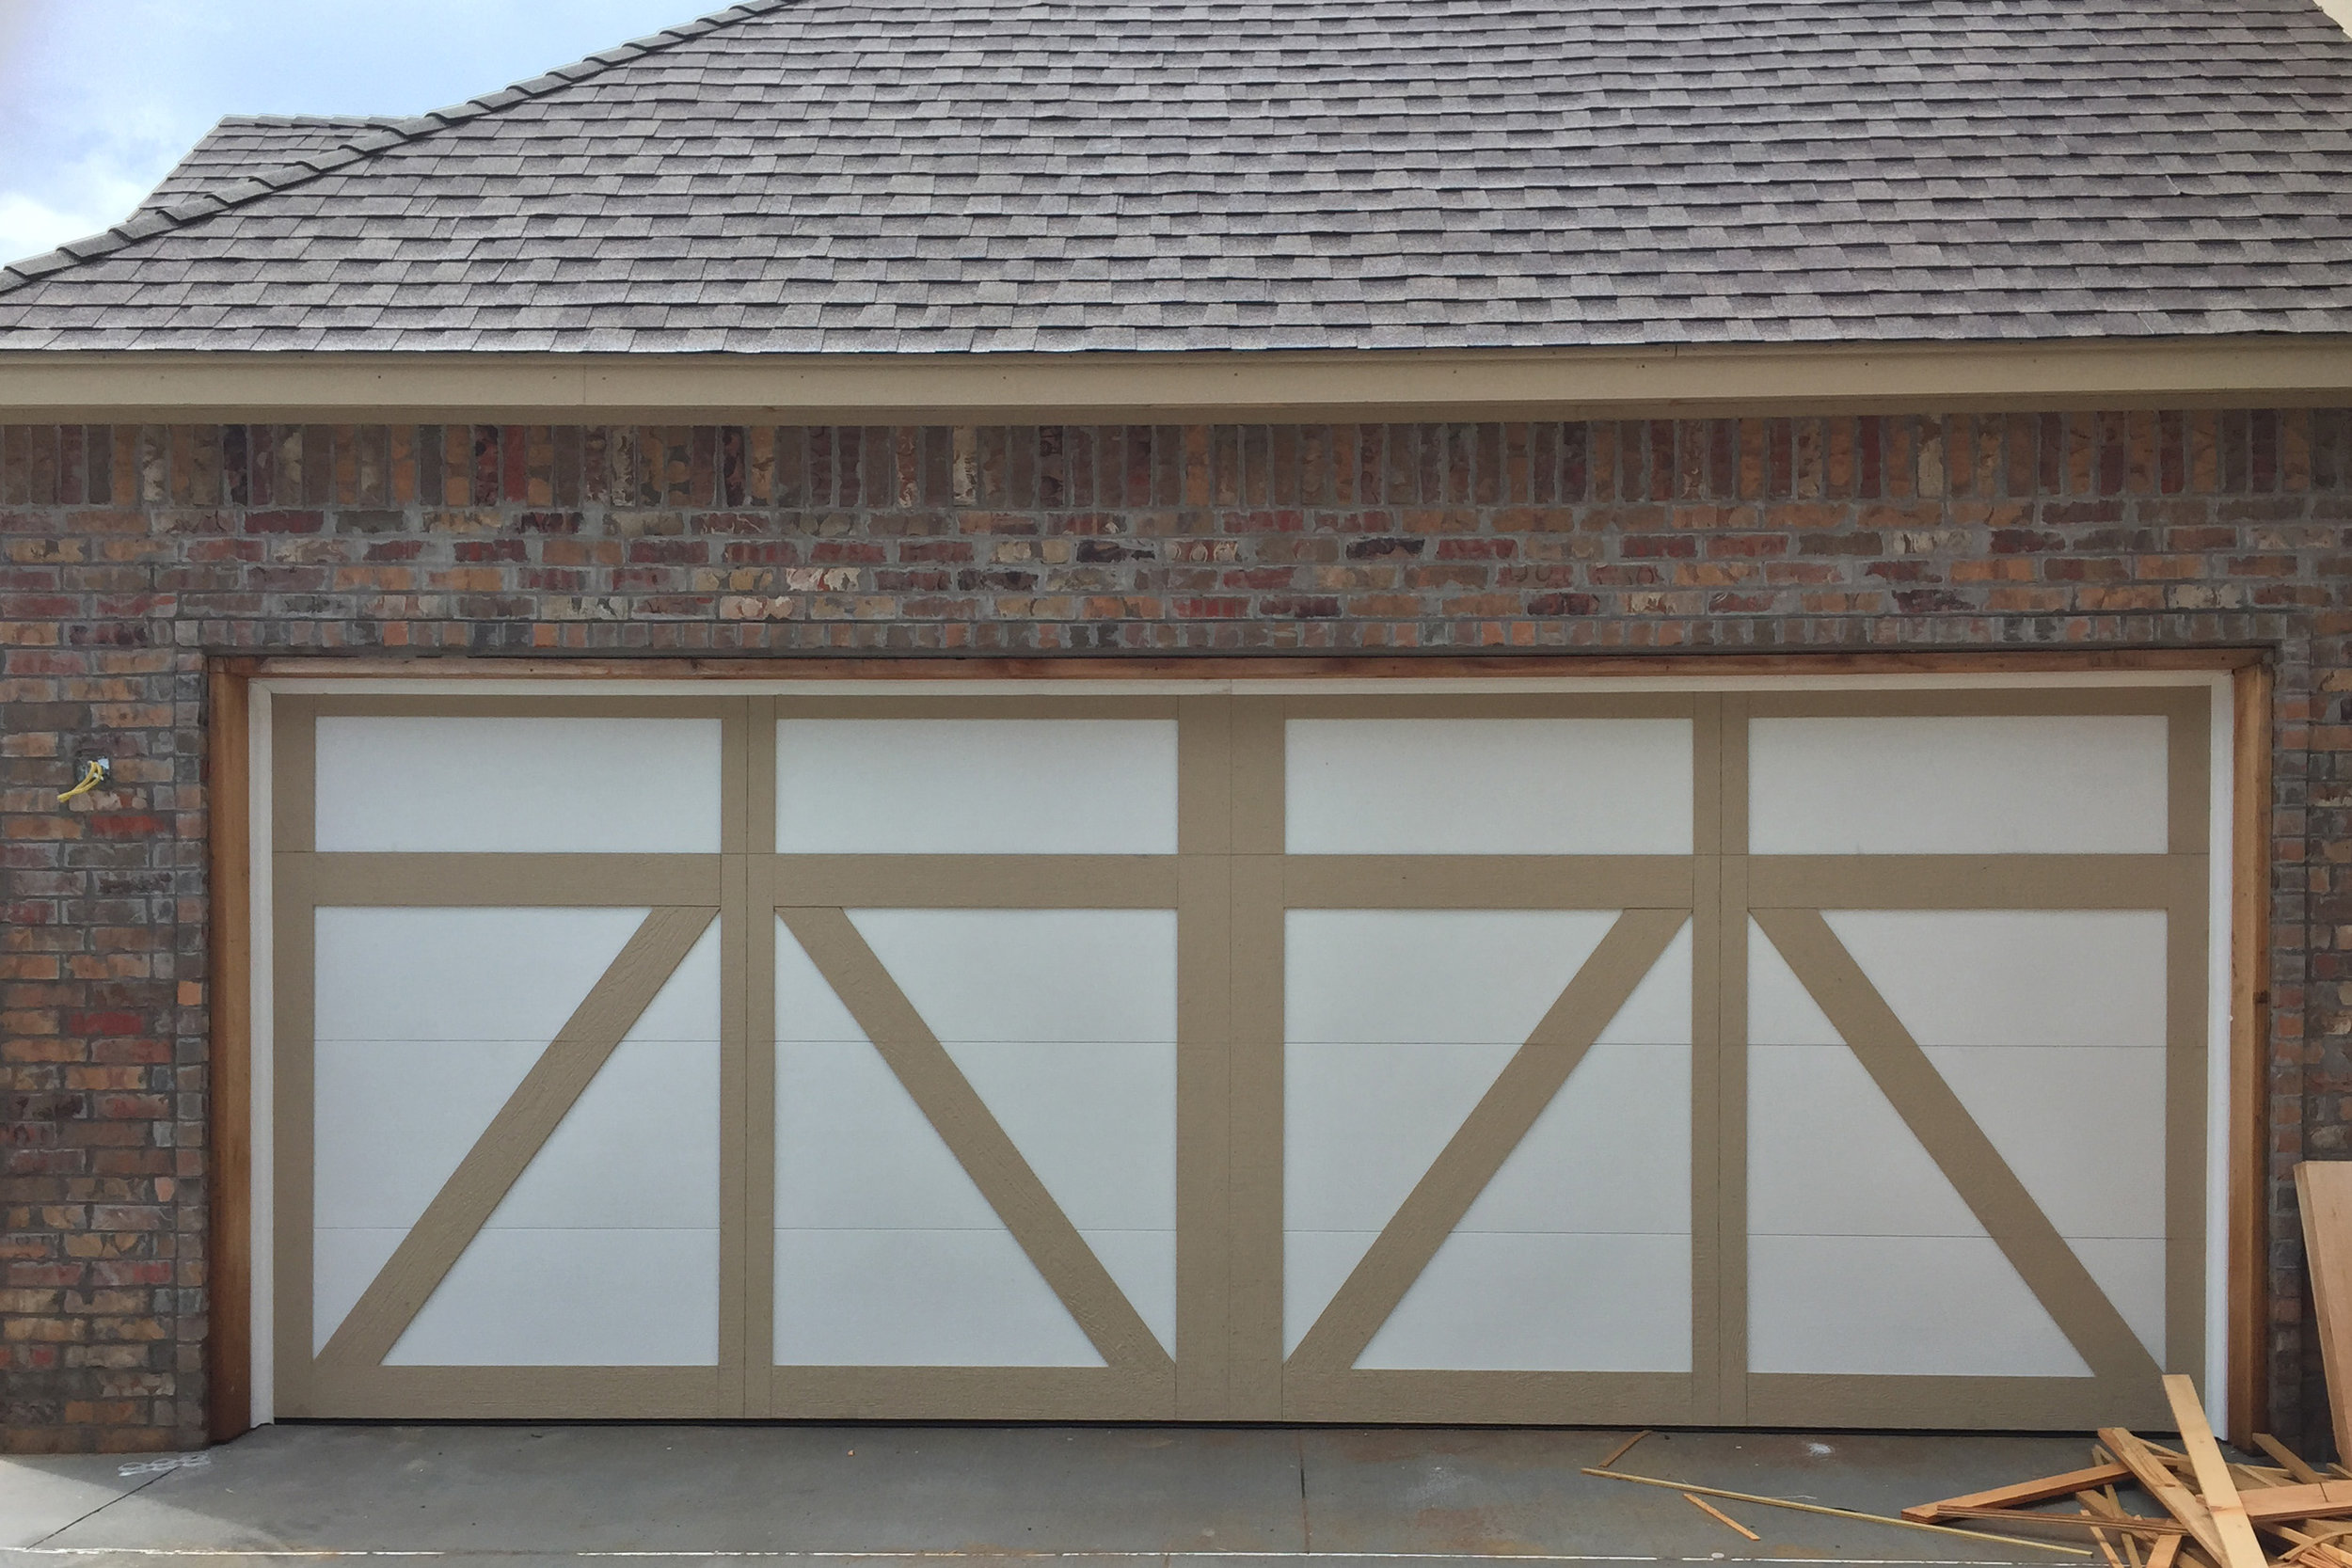 3 Time-Tested Garage Door Materials to Give Your Home a Facelift & Time-Tested Garage Door Materials to Give Your Home a Facelift Pezcame.Com